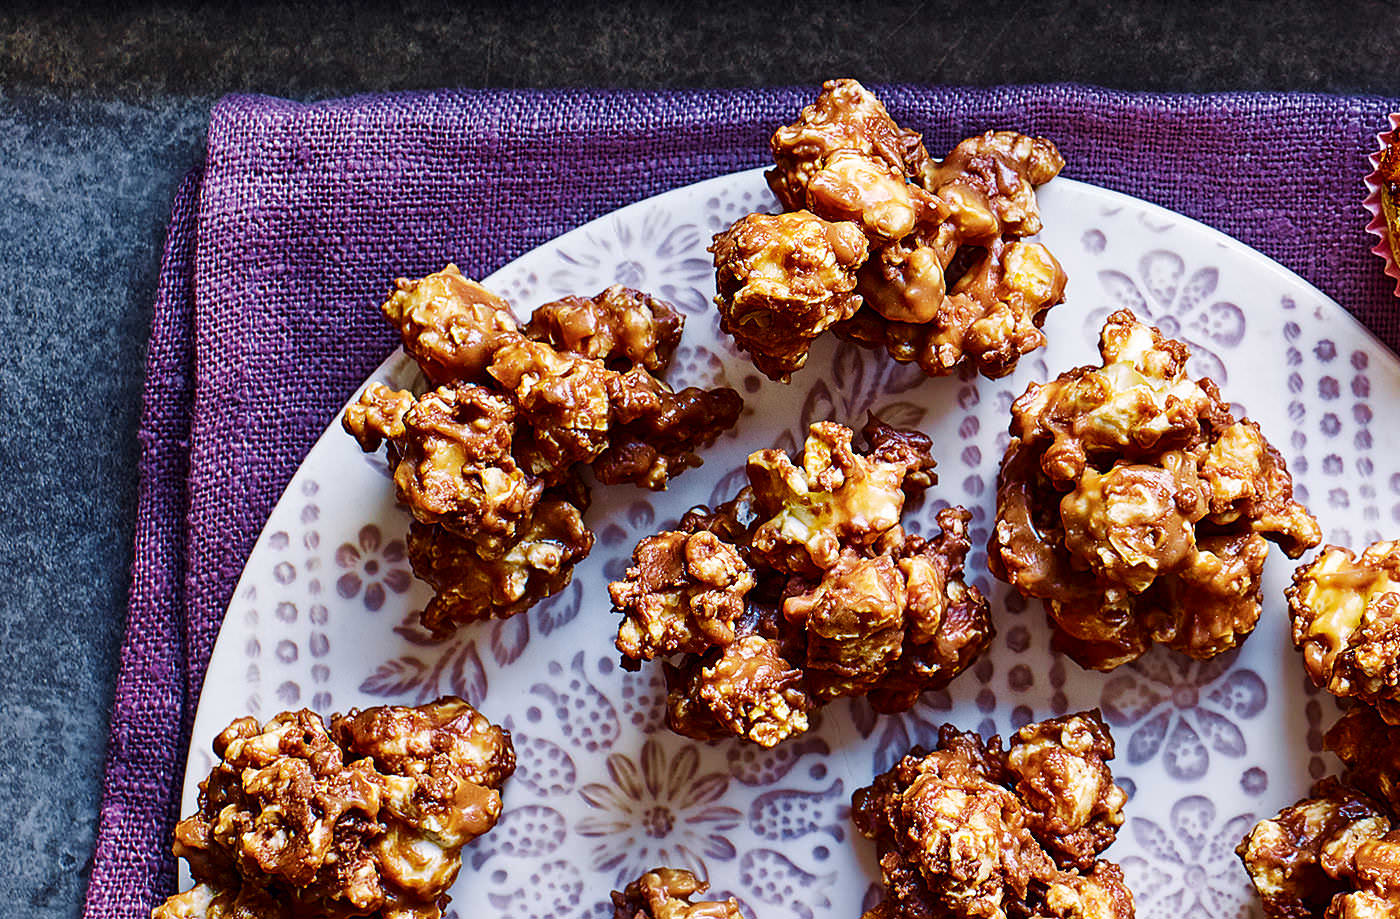 Salted caramel and chocolate popcorn bites